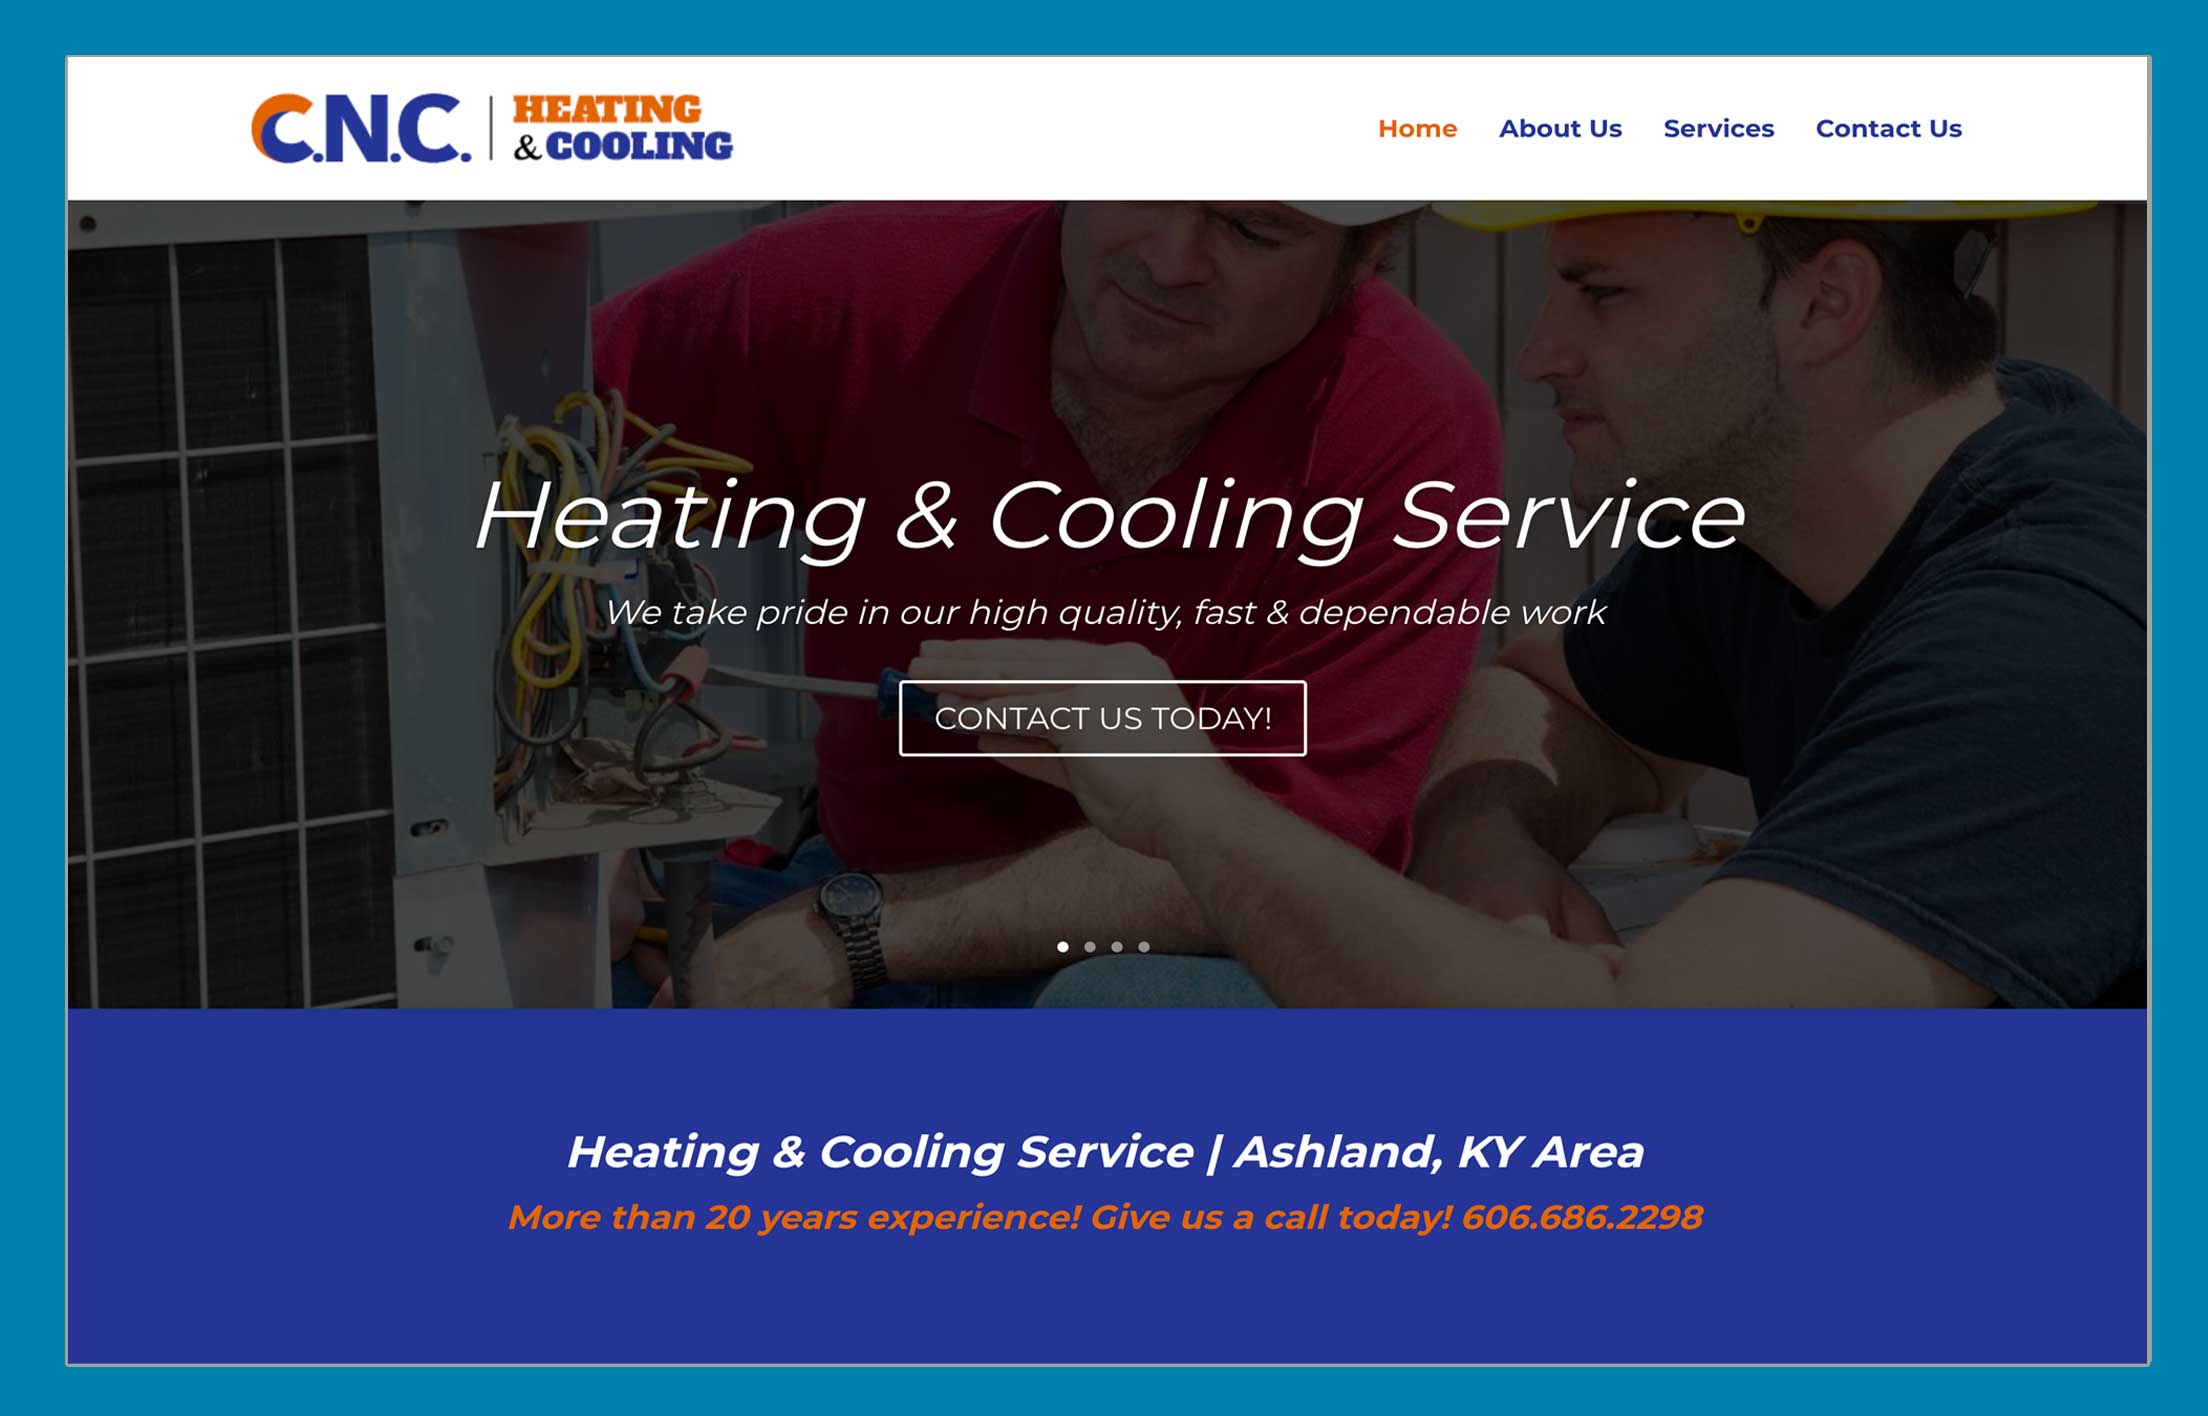 C.N.C. Heating & Cooling